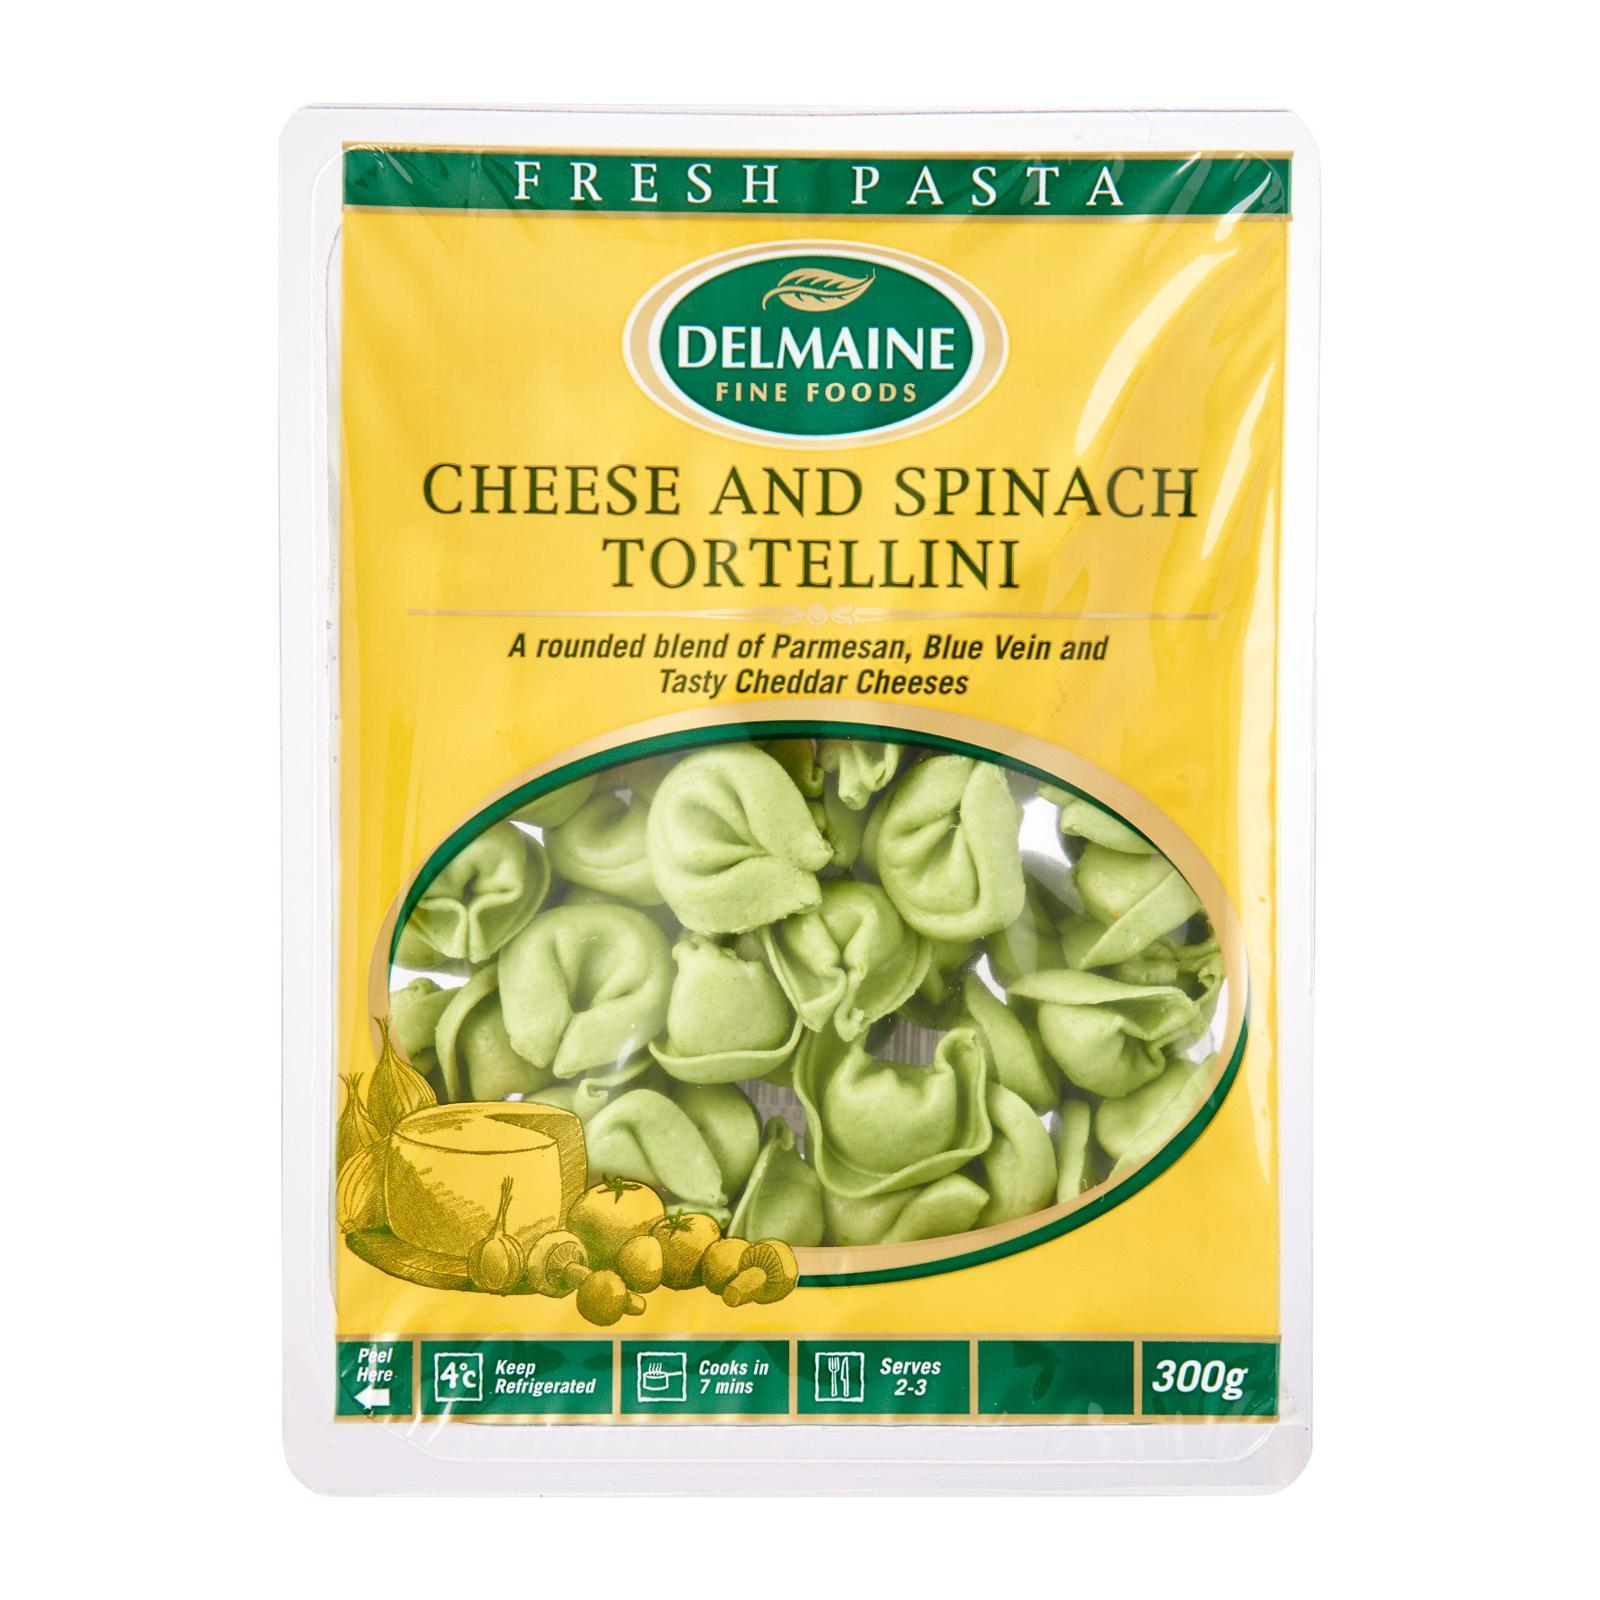 Delmaine Cheese And Spinach Tortellini Filled Pasta By Redmart.